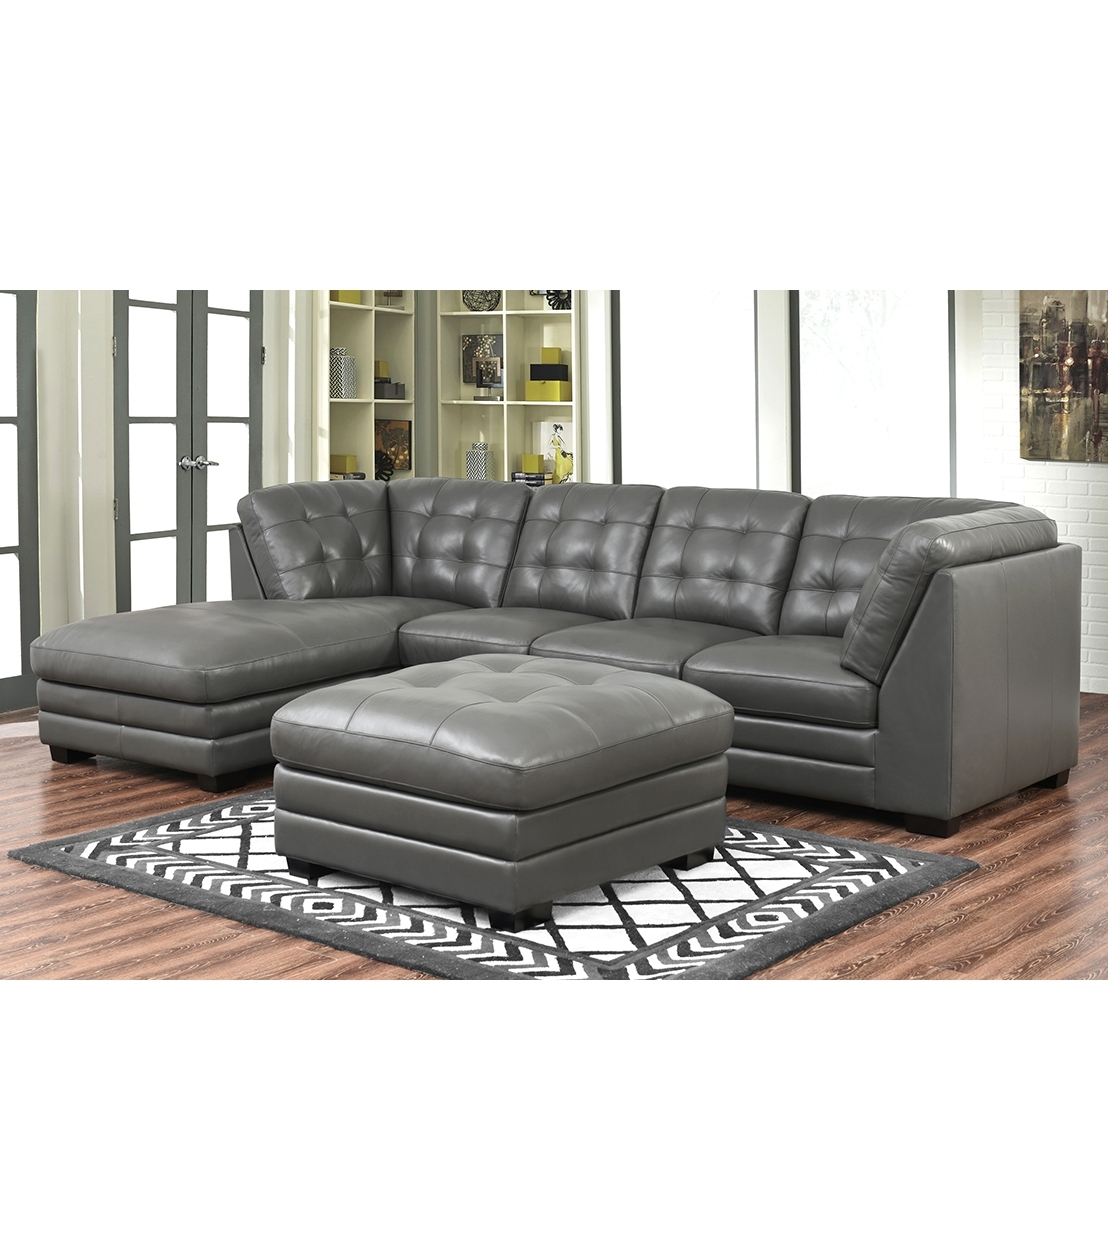 Sectionals : Lawrence Top Grain Leather Sectional With Ottoman Pertaining To Favorite Leather Sectionals With Ottoman (View 15 of 15)